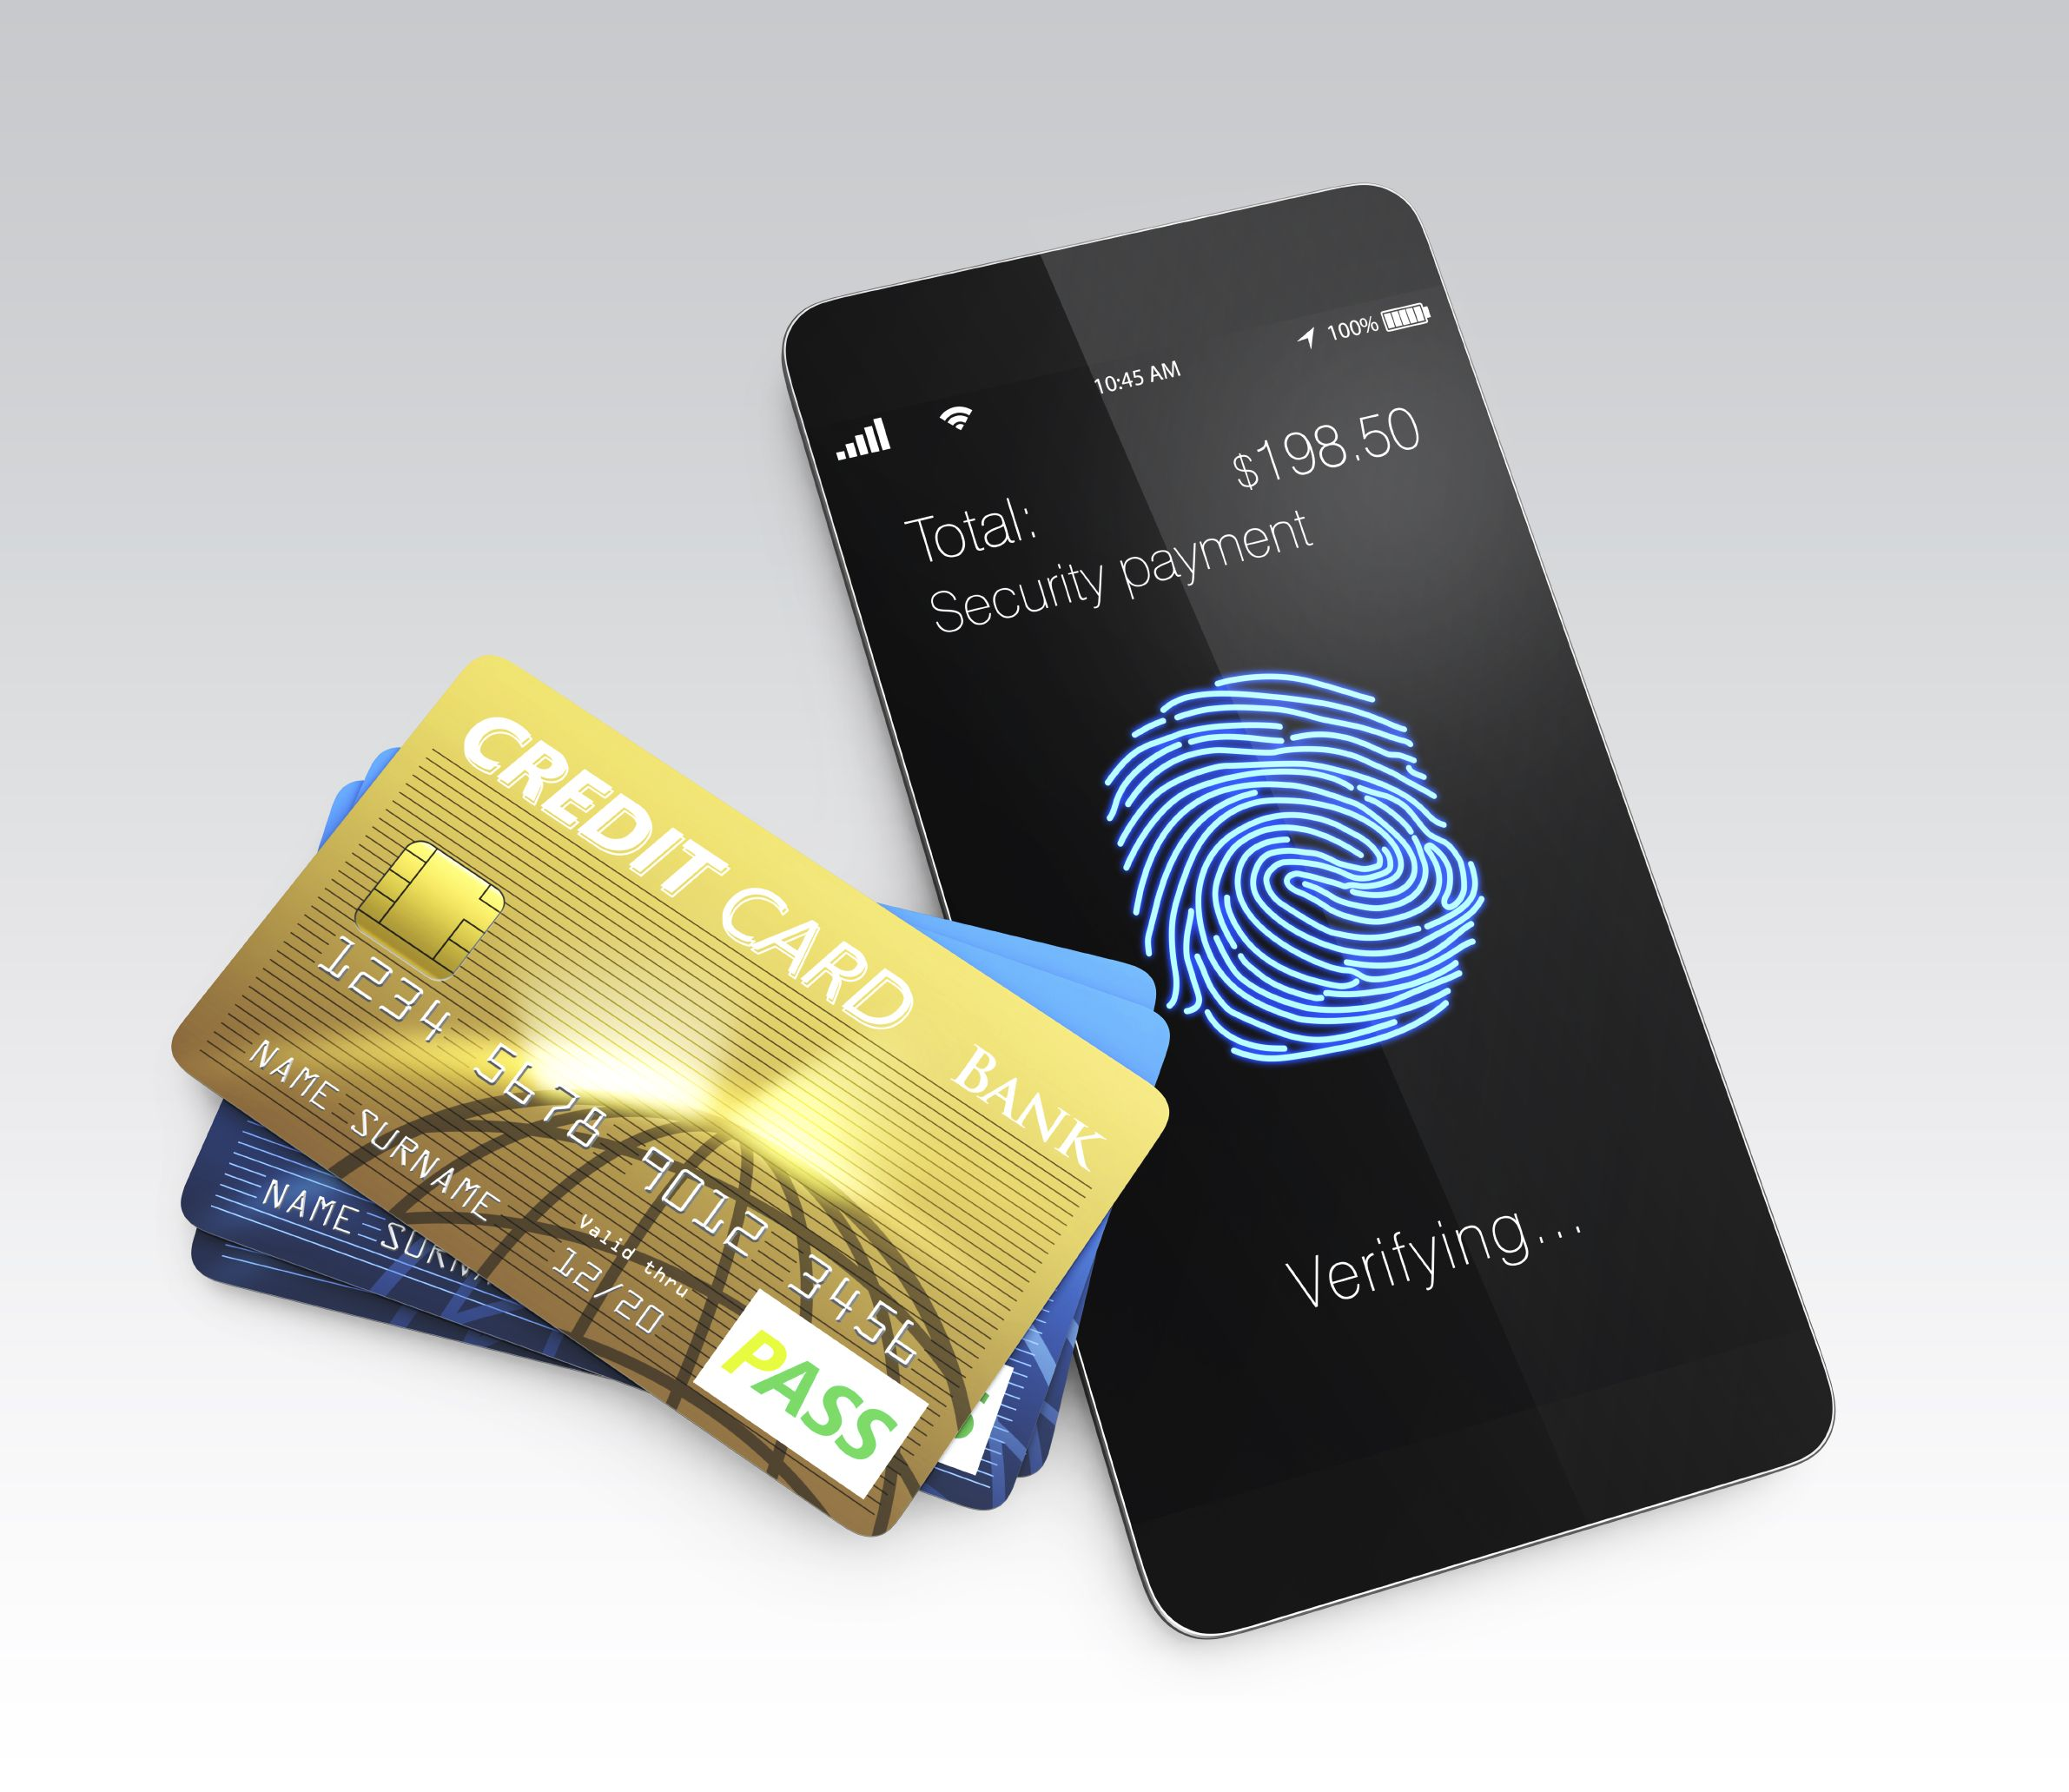 How Card Based Payment Options Are Evolving Biometrics Sales And Marketing Digital Wallet